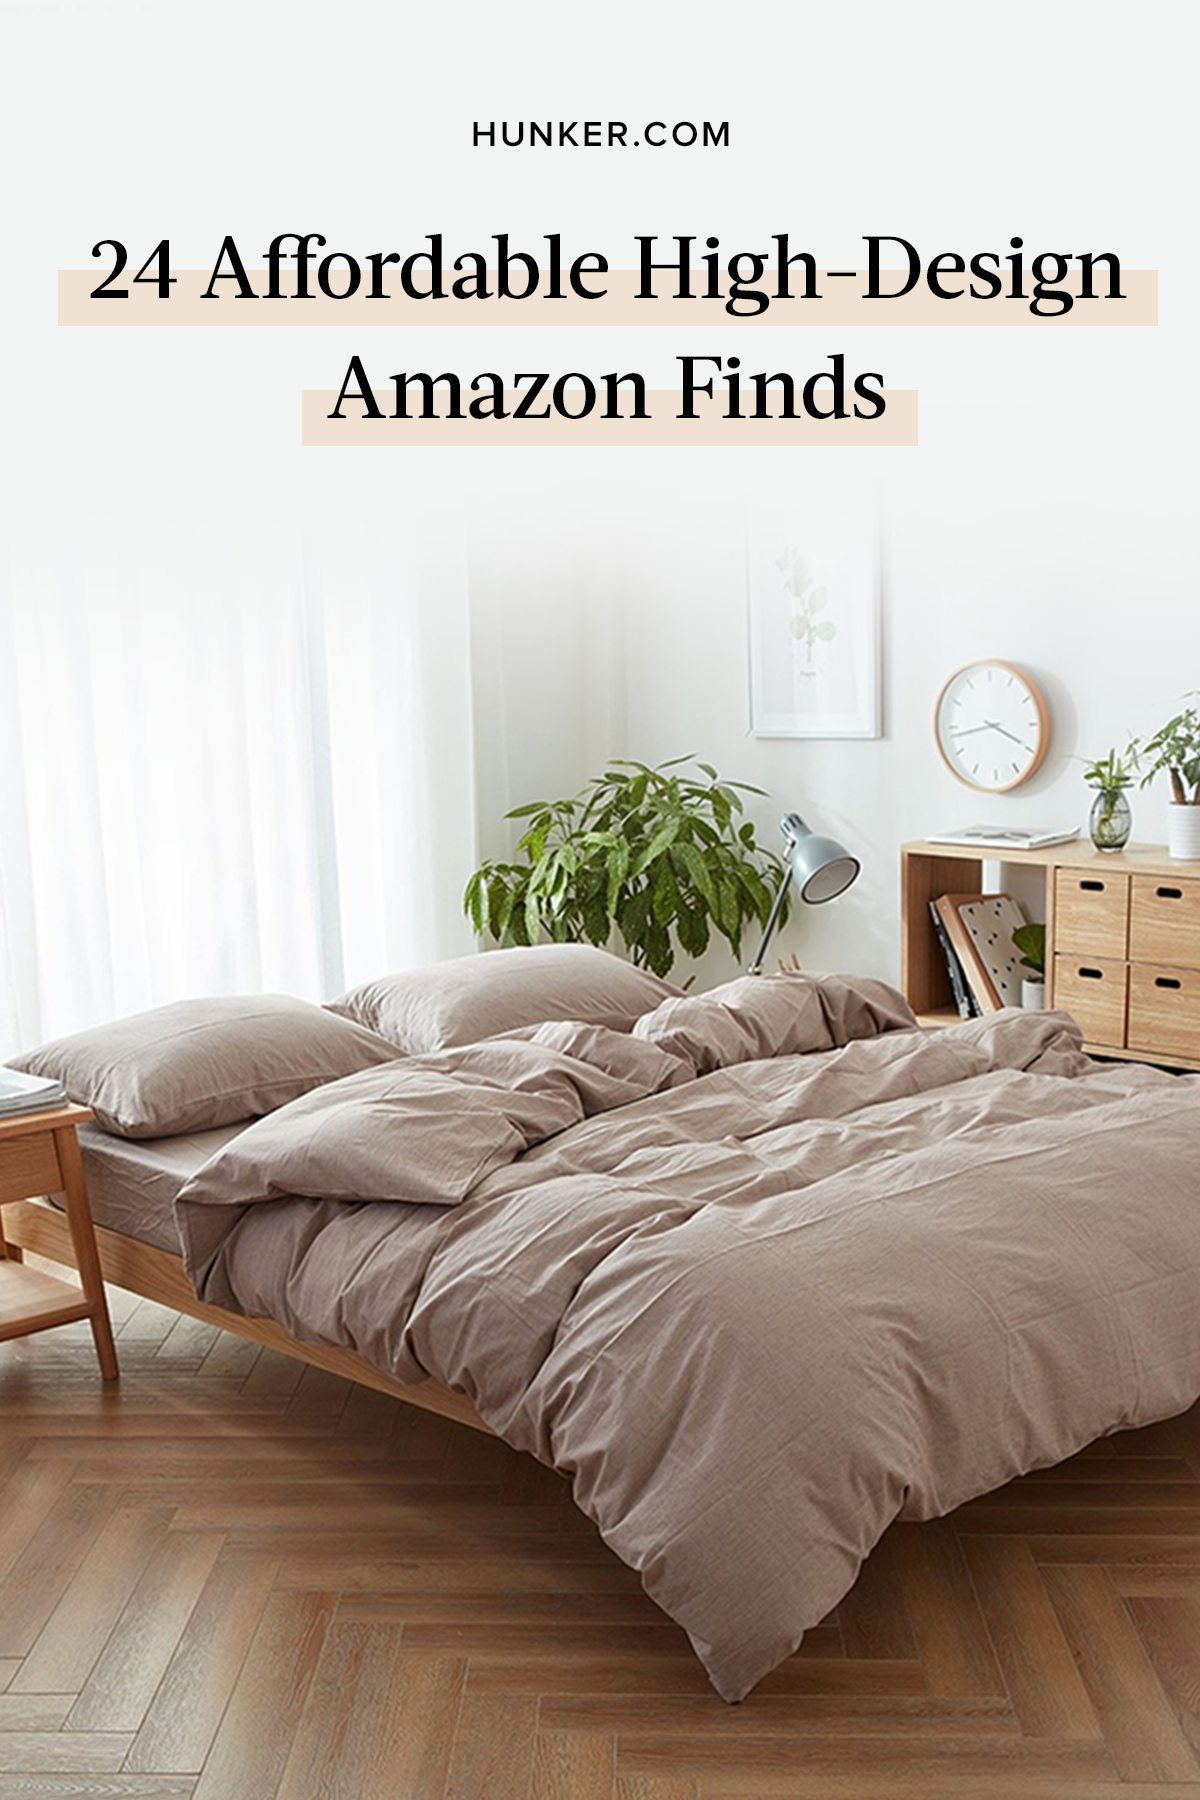 Amazon Finds 24 Affordable Dupes For High Design Decor And Furniture Hunker Furniture Budget Furniture Amazon Home Decor